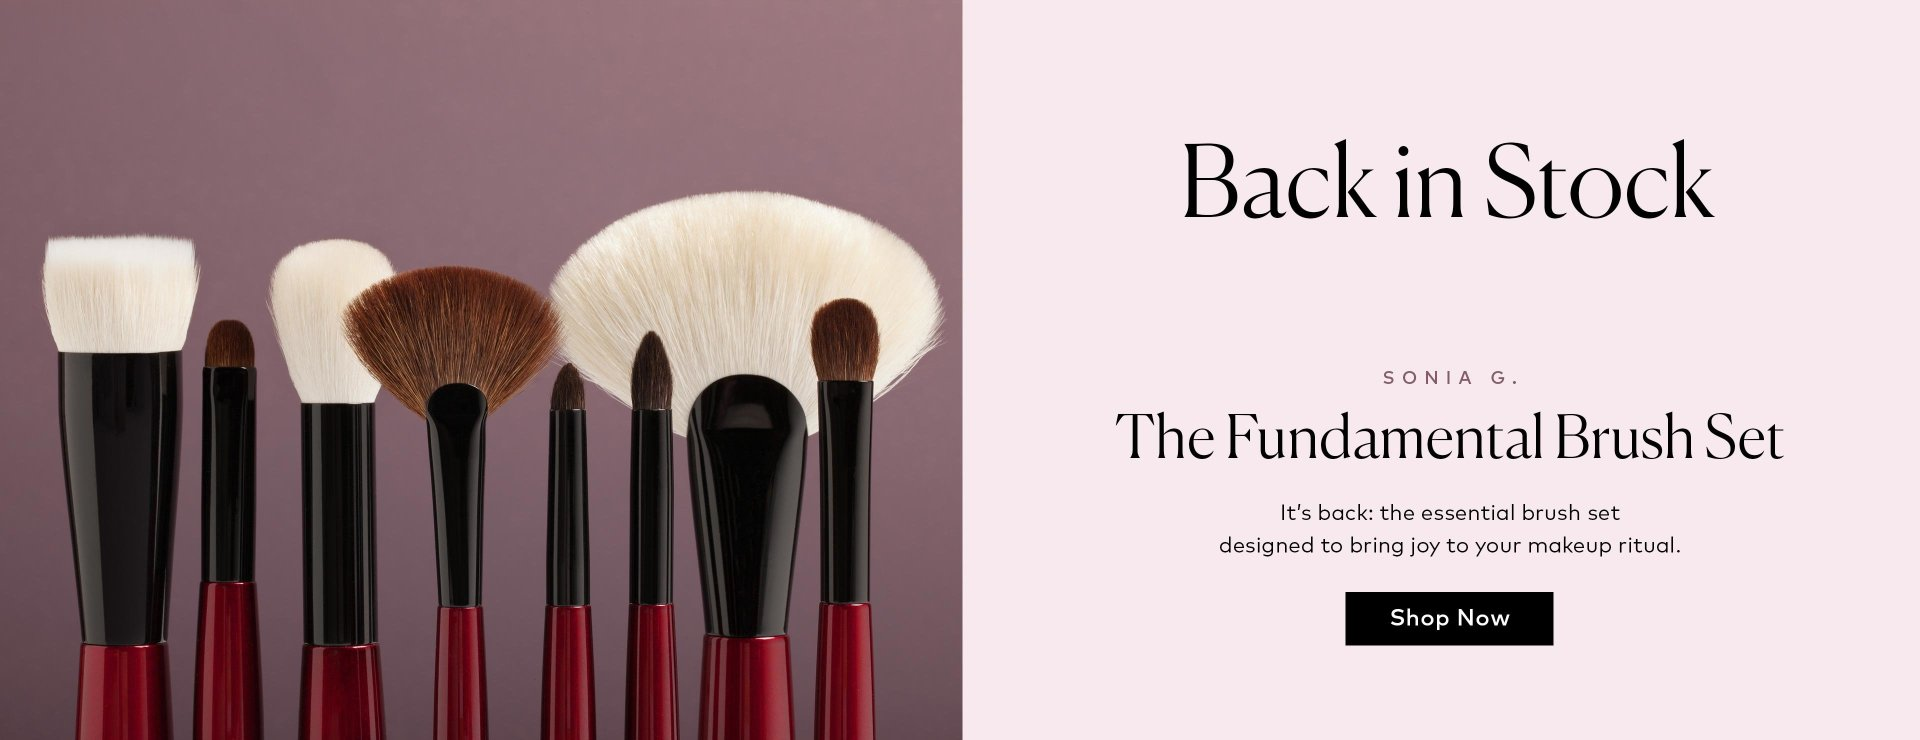 Sonia G.'s Fundamental Brush Set is now back in stock – shop now!